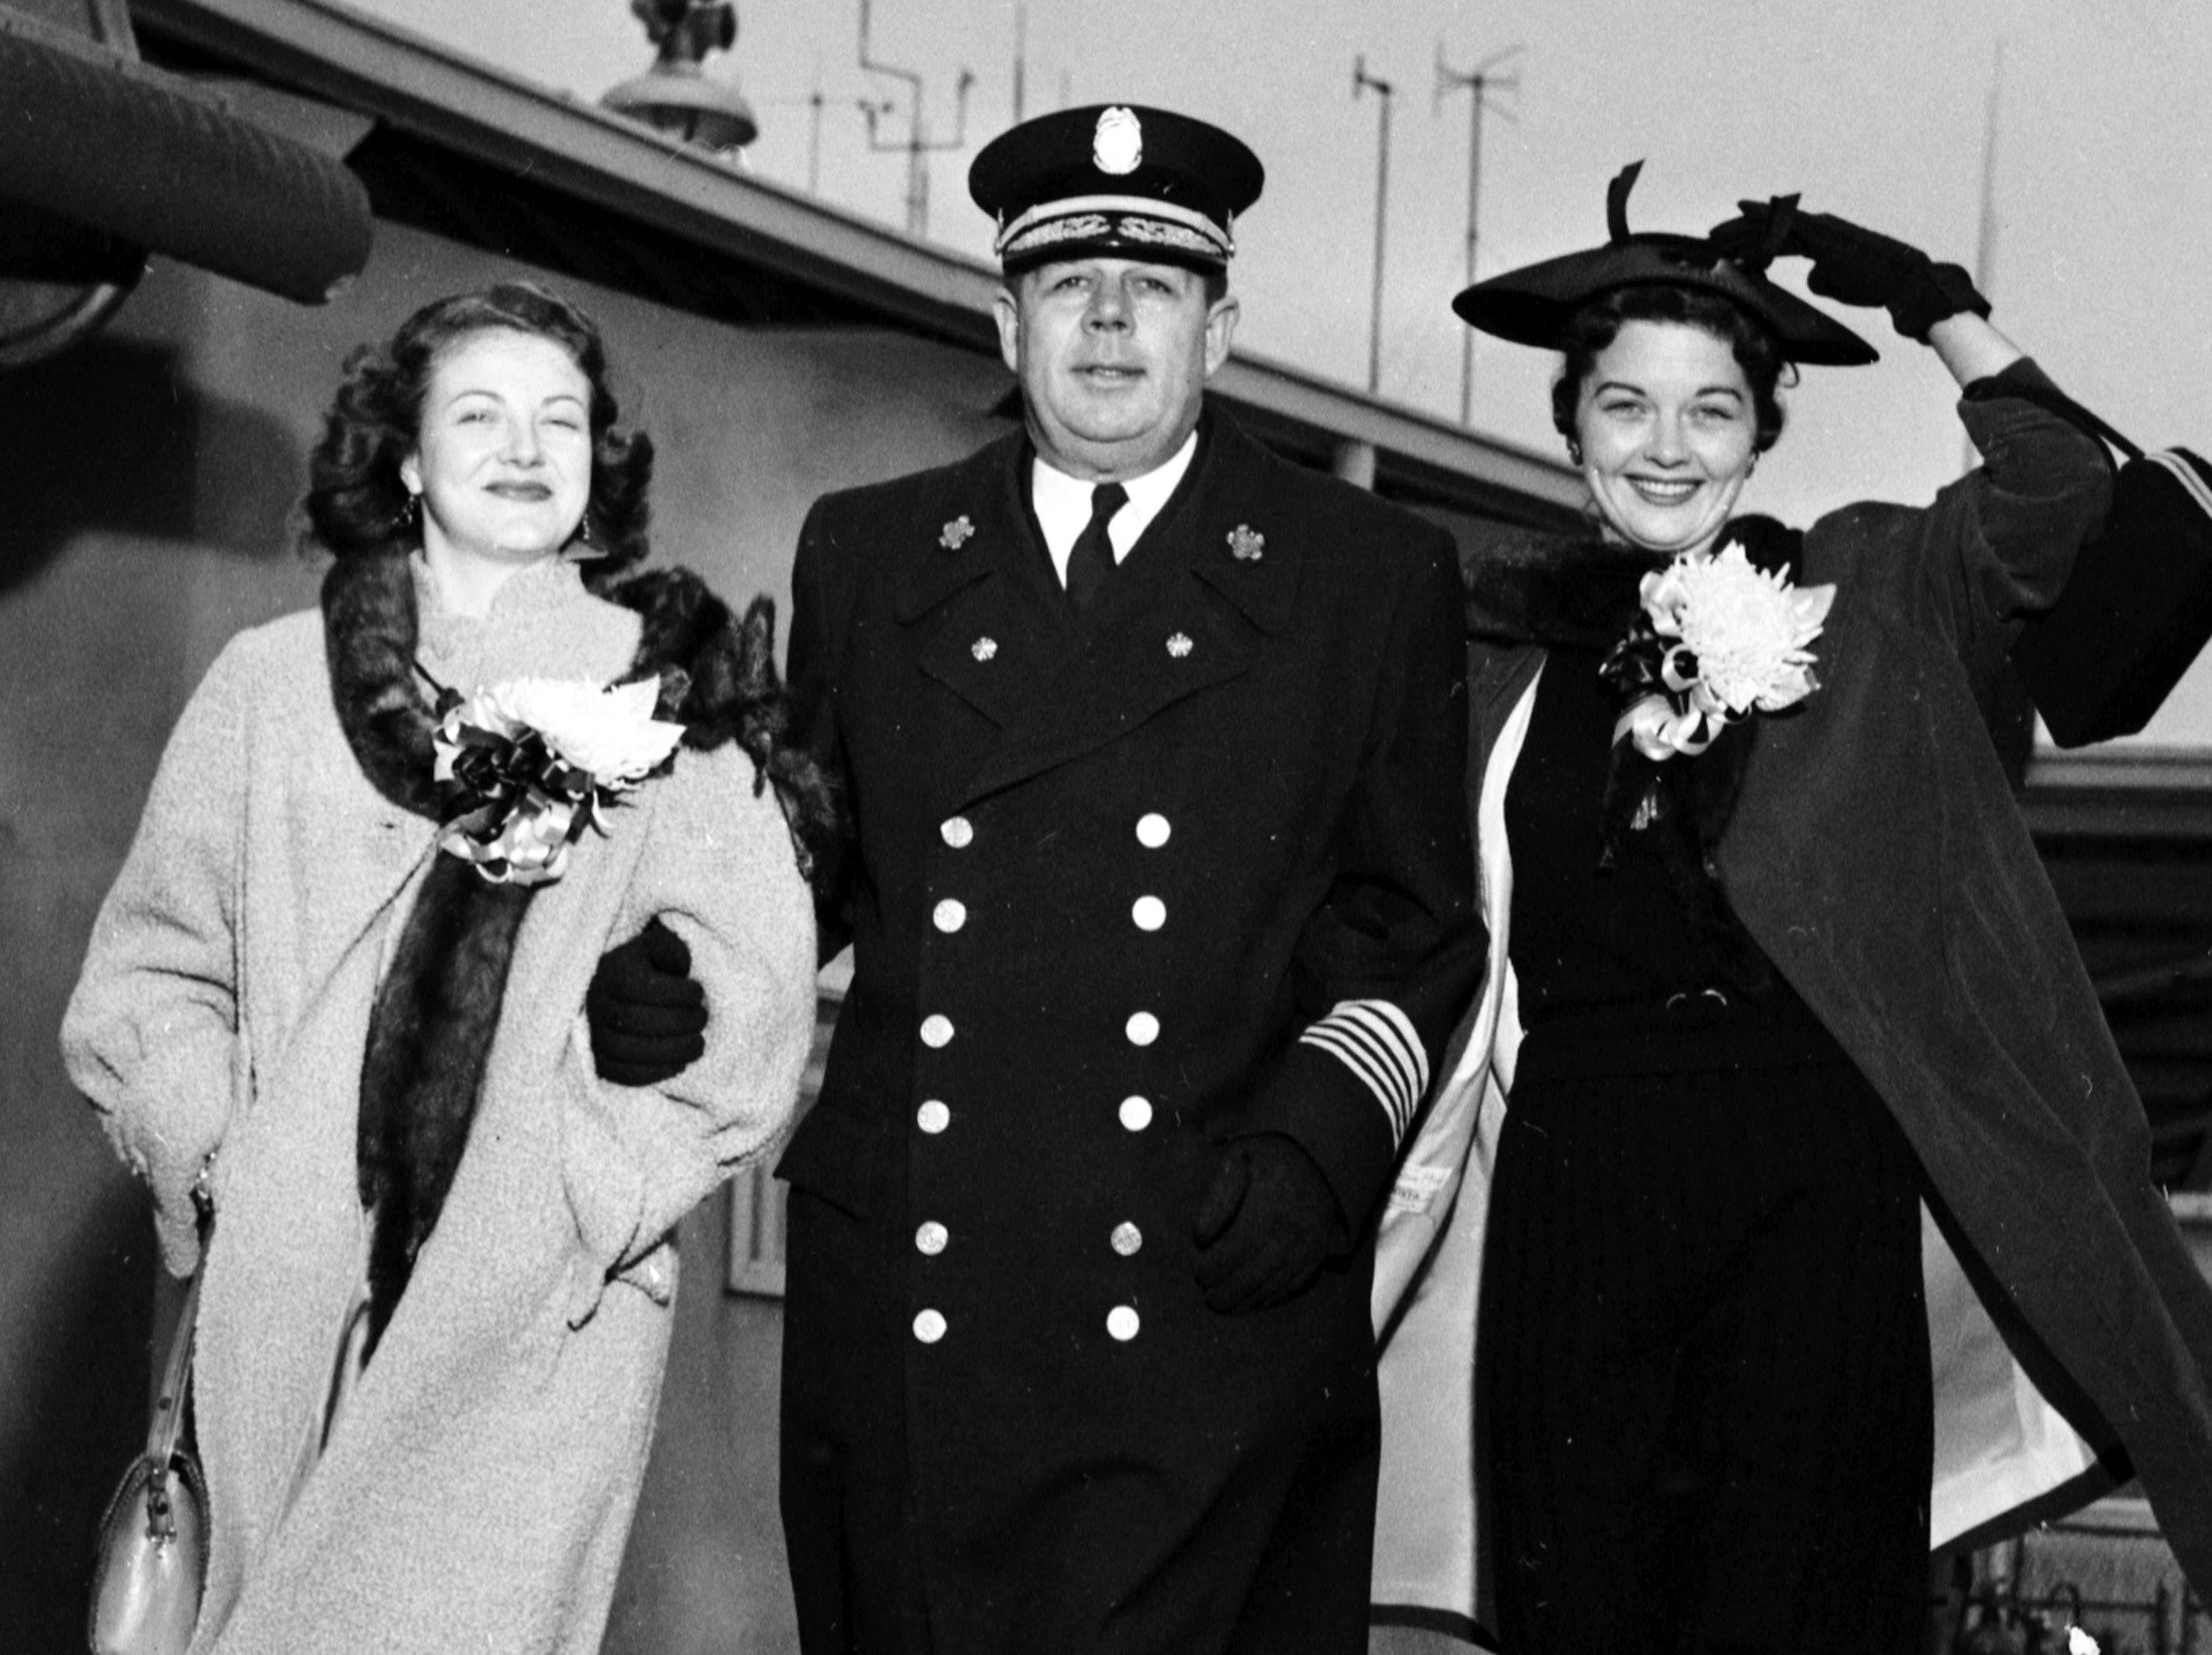 Memphis Fire Chief John C. Klinck performed the pleasant task in January 1956 of escorting two pretty young Memphians to a New Orleans-bound airplane at the Airport.  Miss Billie Loe (Left), Miss Flame, and Miss Anita Glaze, Miss Fire Prevention, won the trip when they were selected to the titles during Fire Prevention Week in 1955.